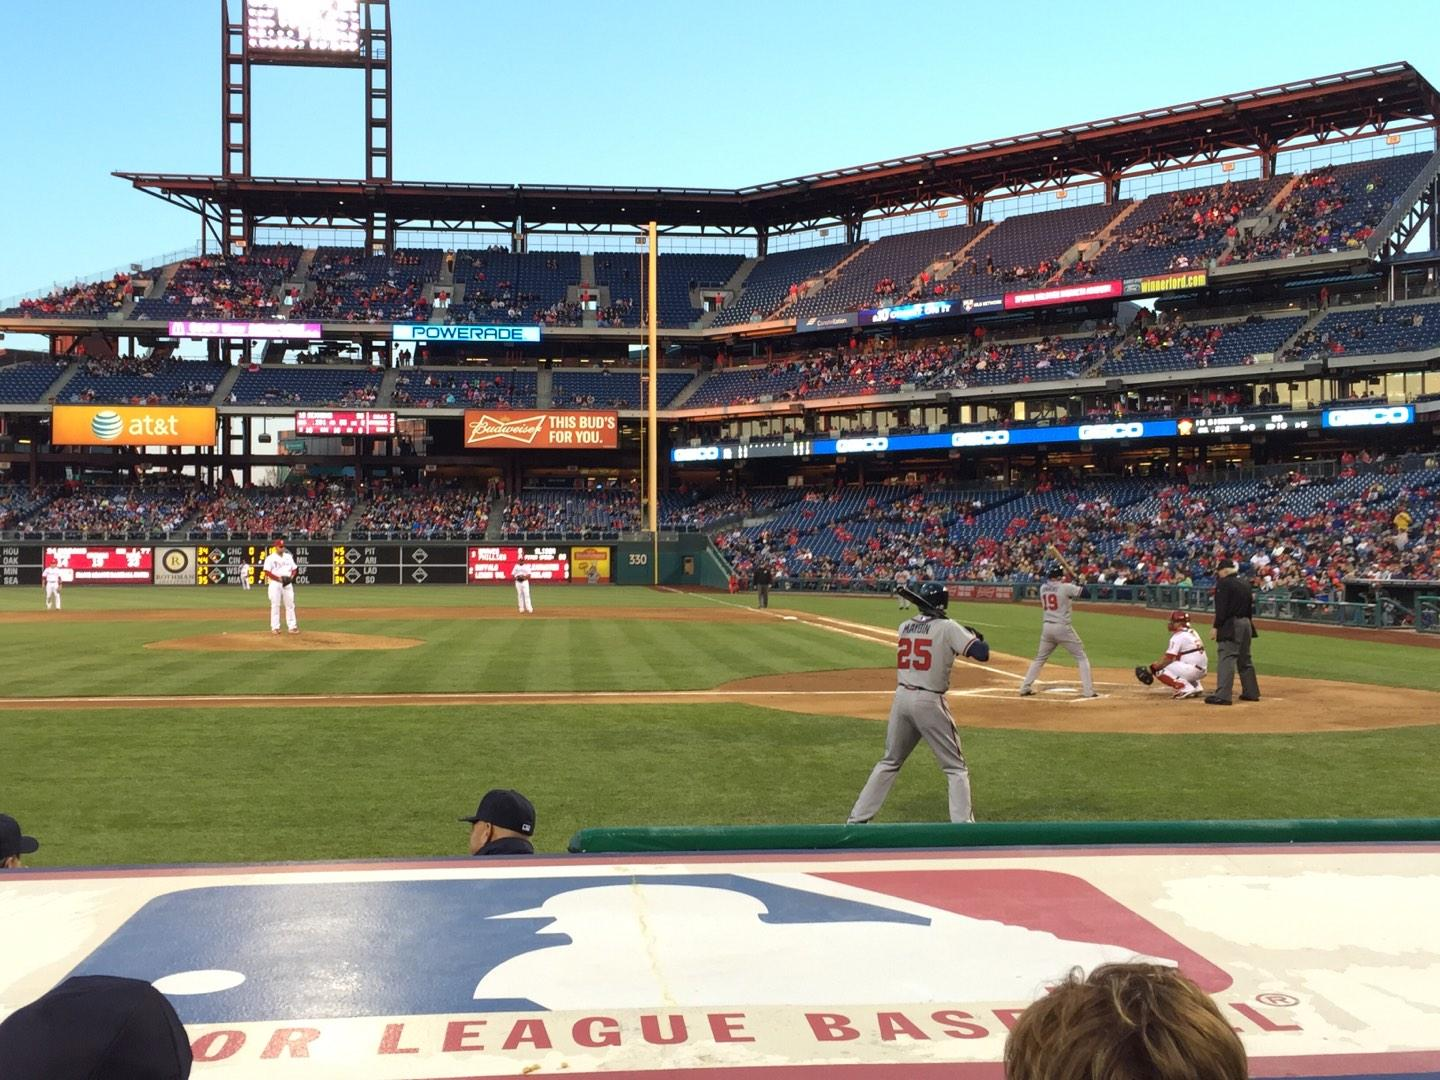 Citizens Bank Park Section 129 Row 3 Seat 3